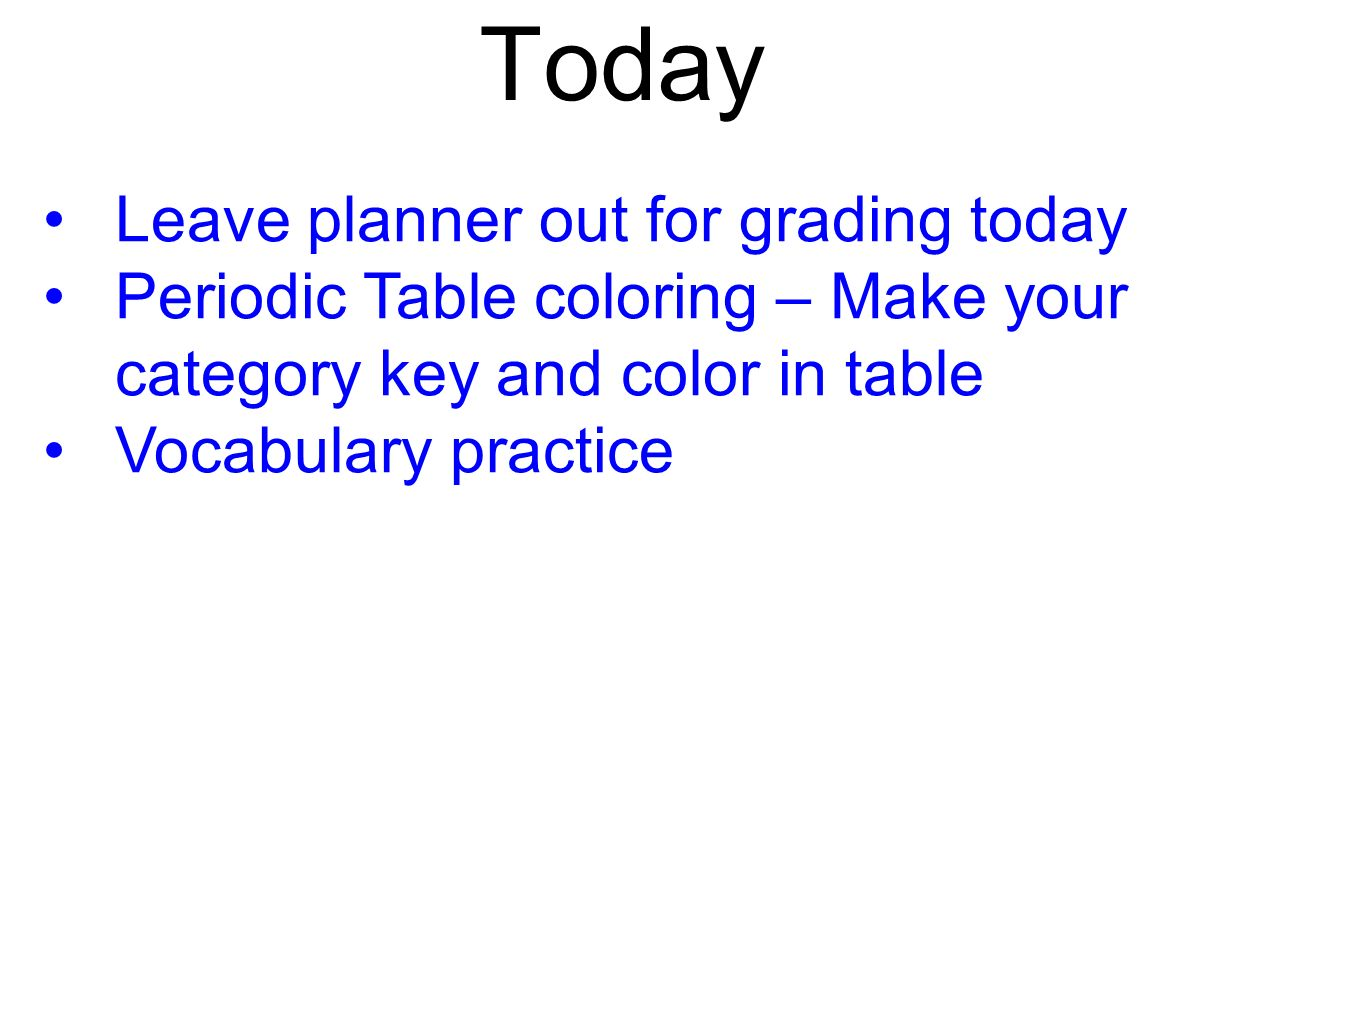 Ar time until 1029 1 student planner place this in the proper 25 today leave planner out for grading today periodic table coloring make your category key and color in table vocabulary practice urtaz Choice Image